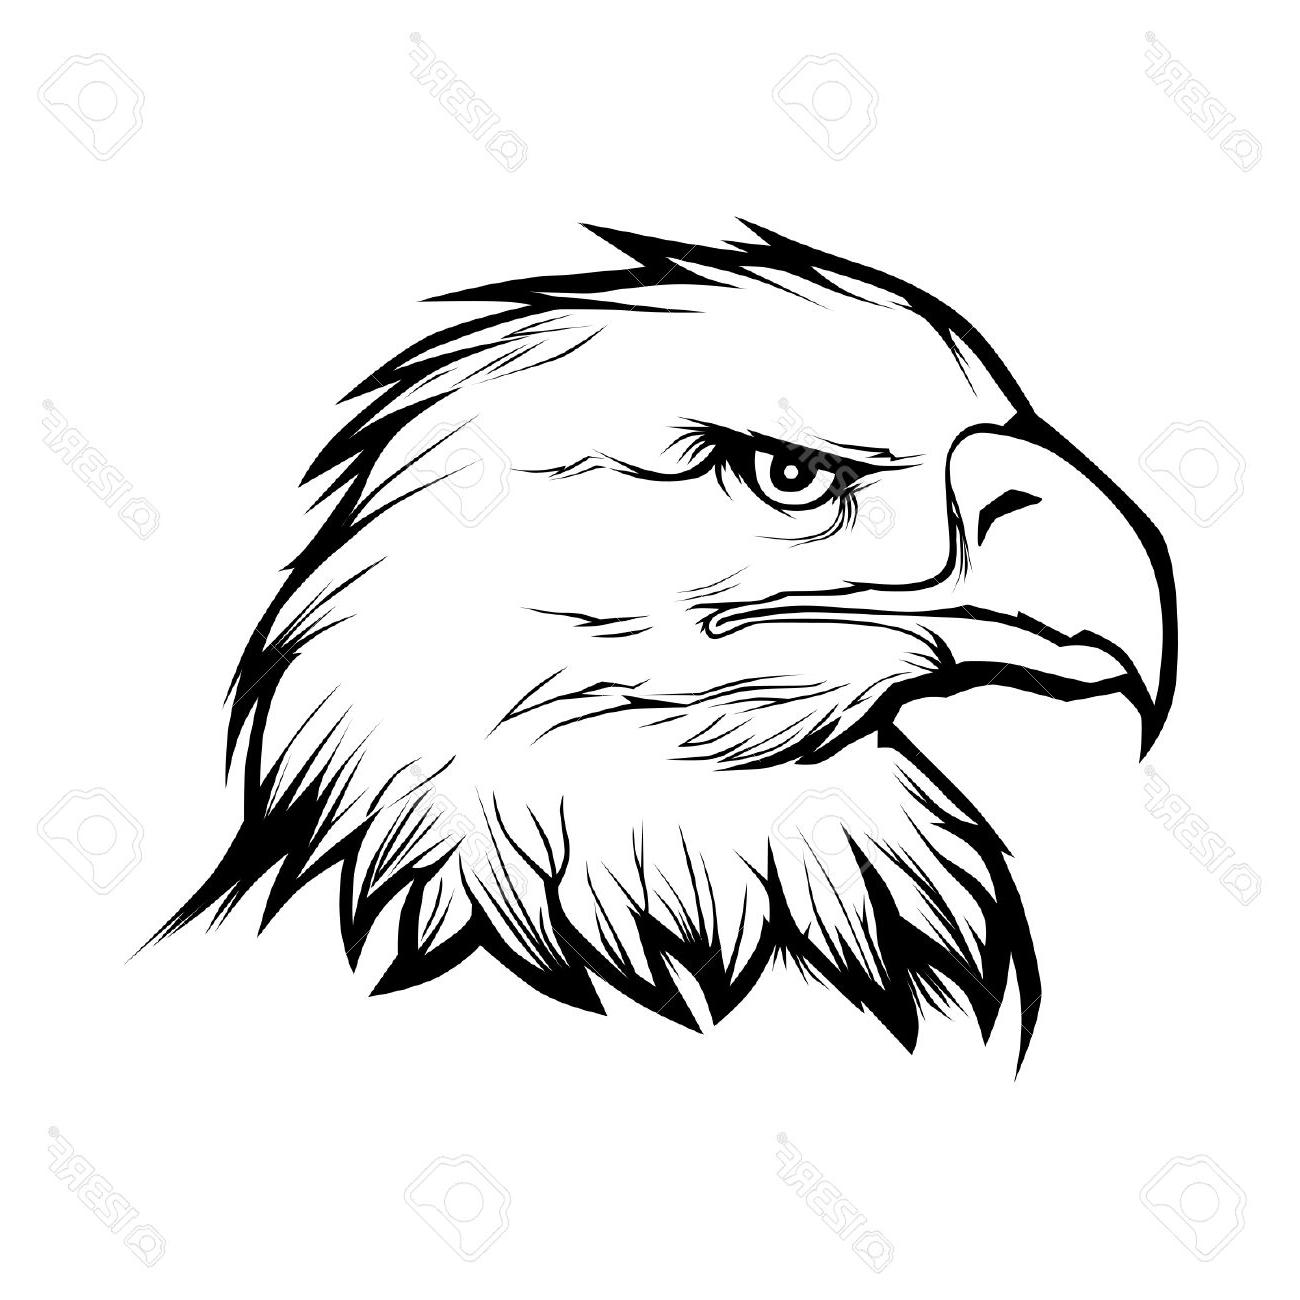 Eagle head clipart black and white jpg library download Eagle head clipart black and white 5 » Clipart Station jpg library download